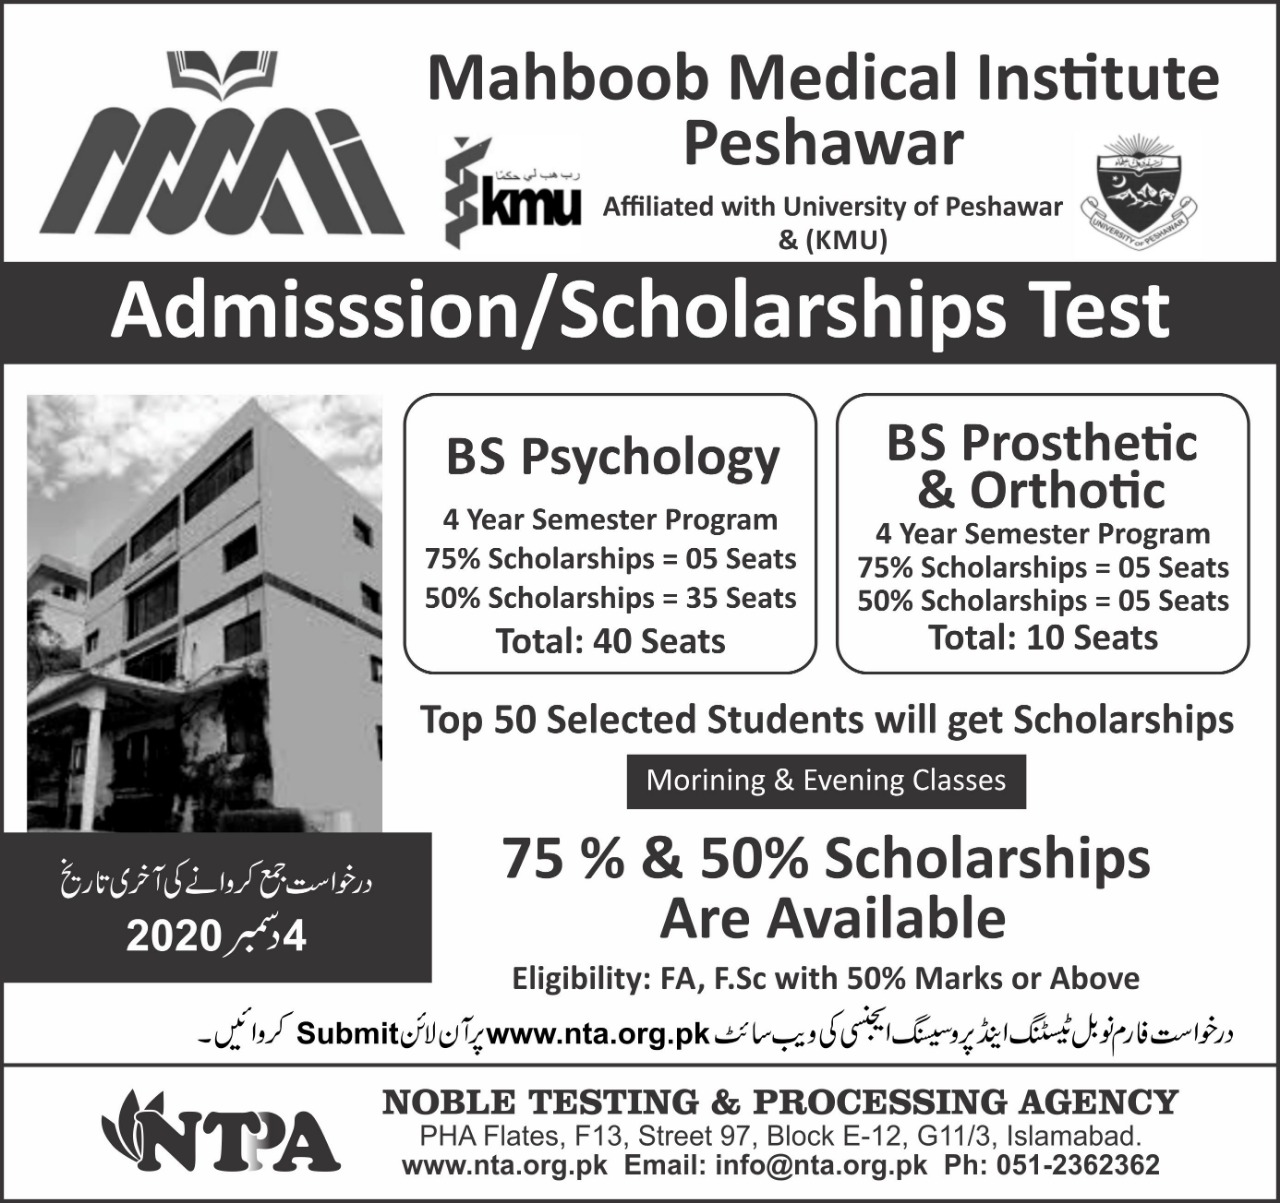 Mahboob Medical Institute Admission Scholarship Test NTPA Roll No Slip BS Psychology & BS Prosthetic & Orthotic